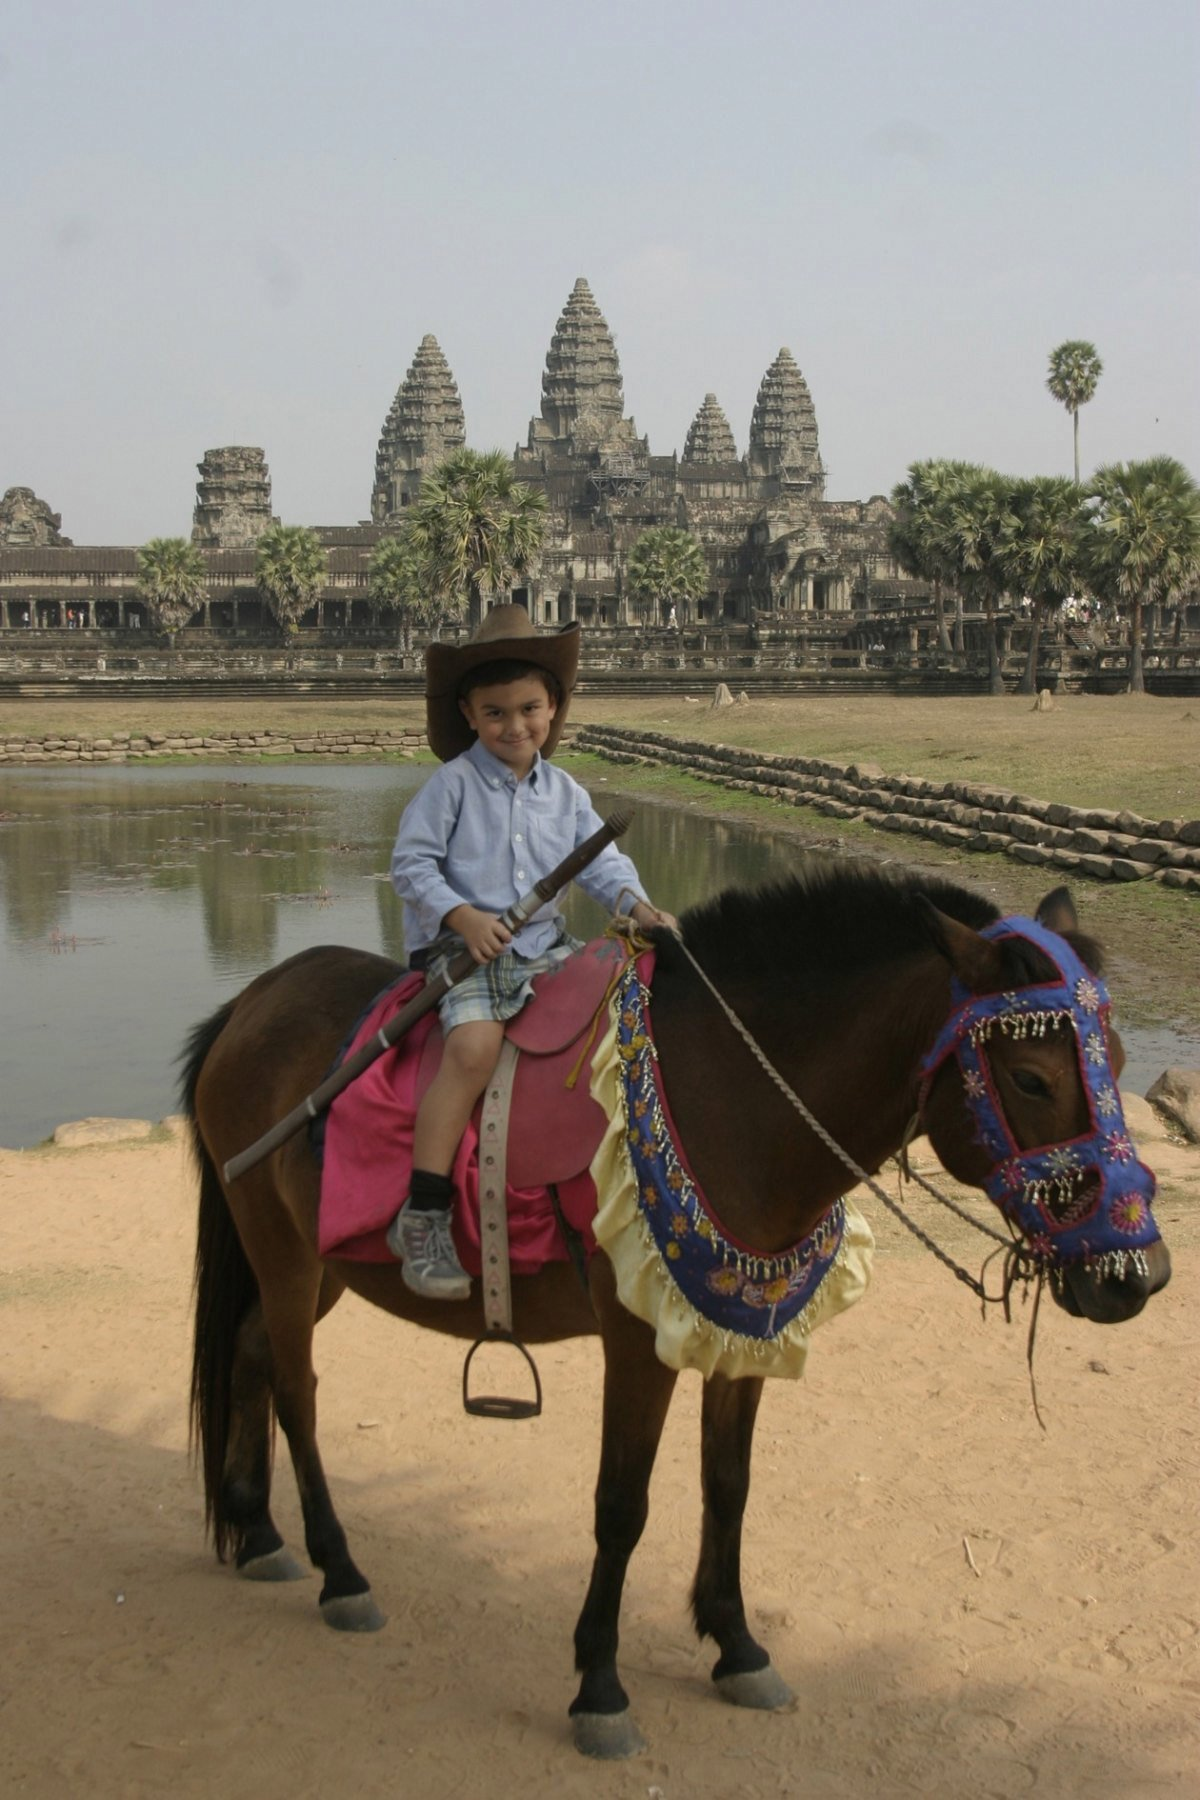 4-ld-with-sword-on-horse-angkor-wat-temple-cambodia-feb-20010-17-2011